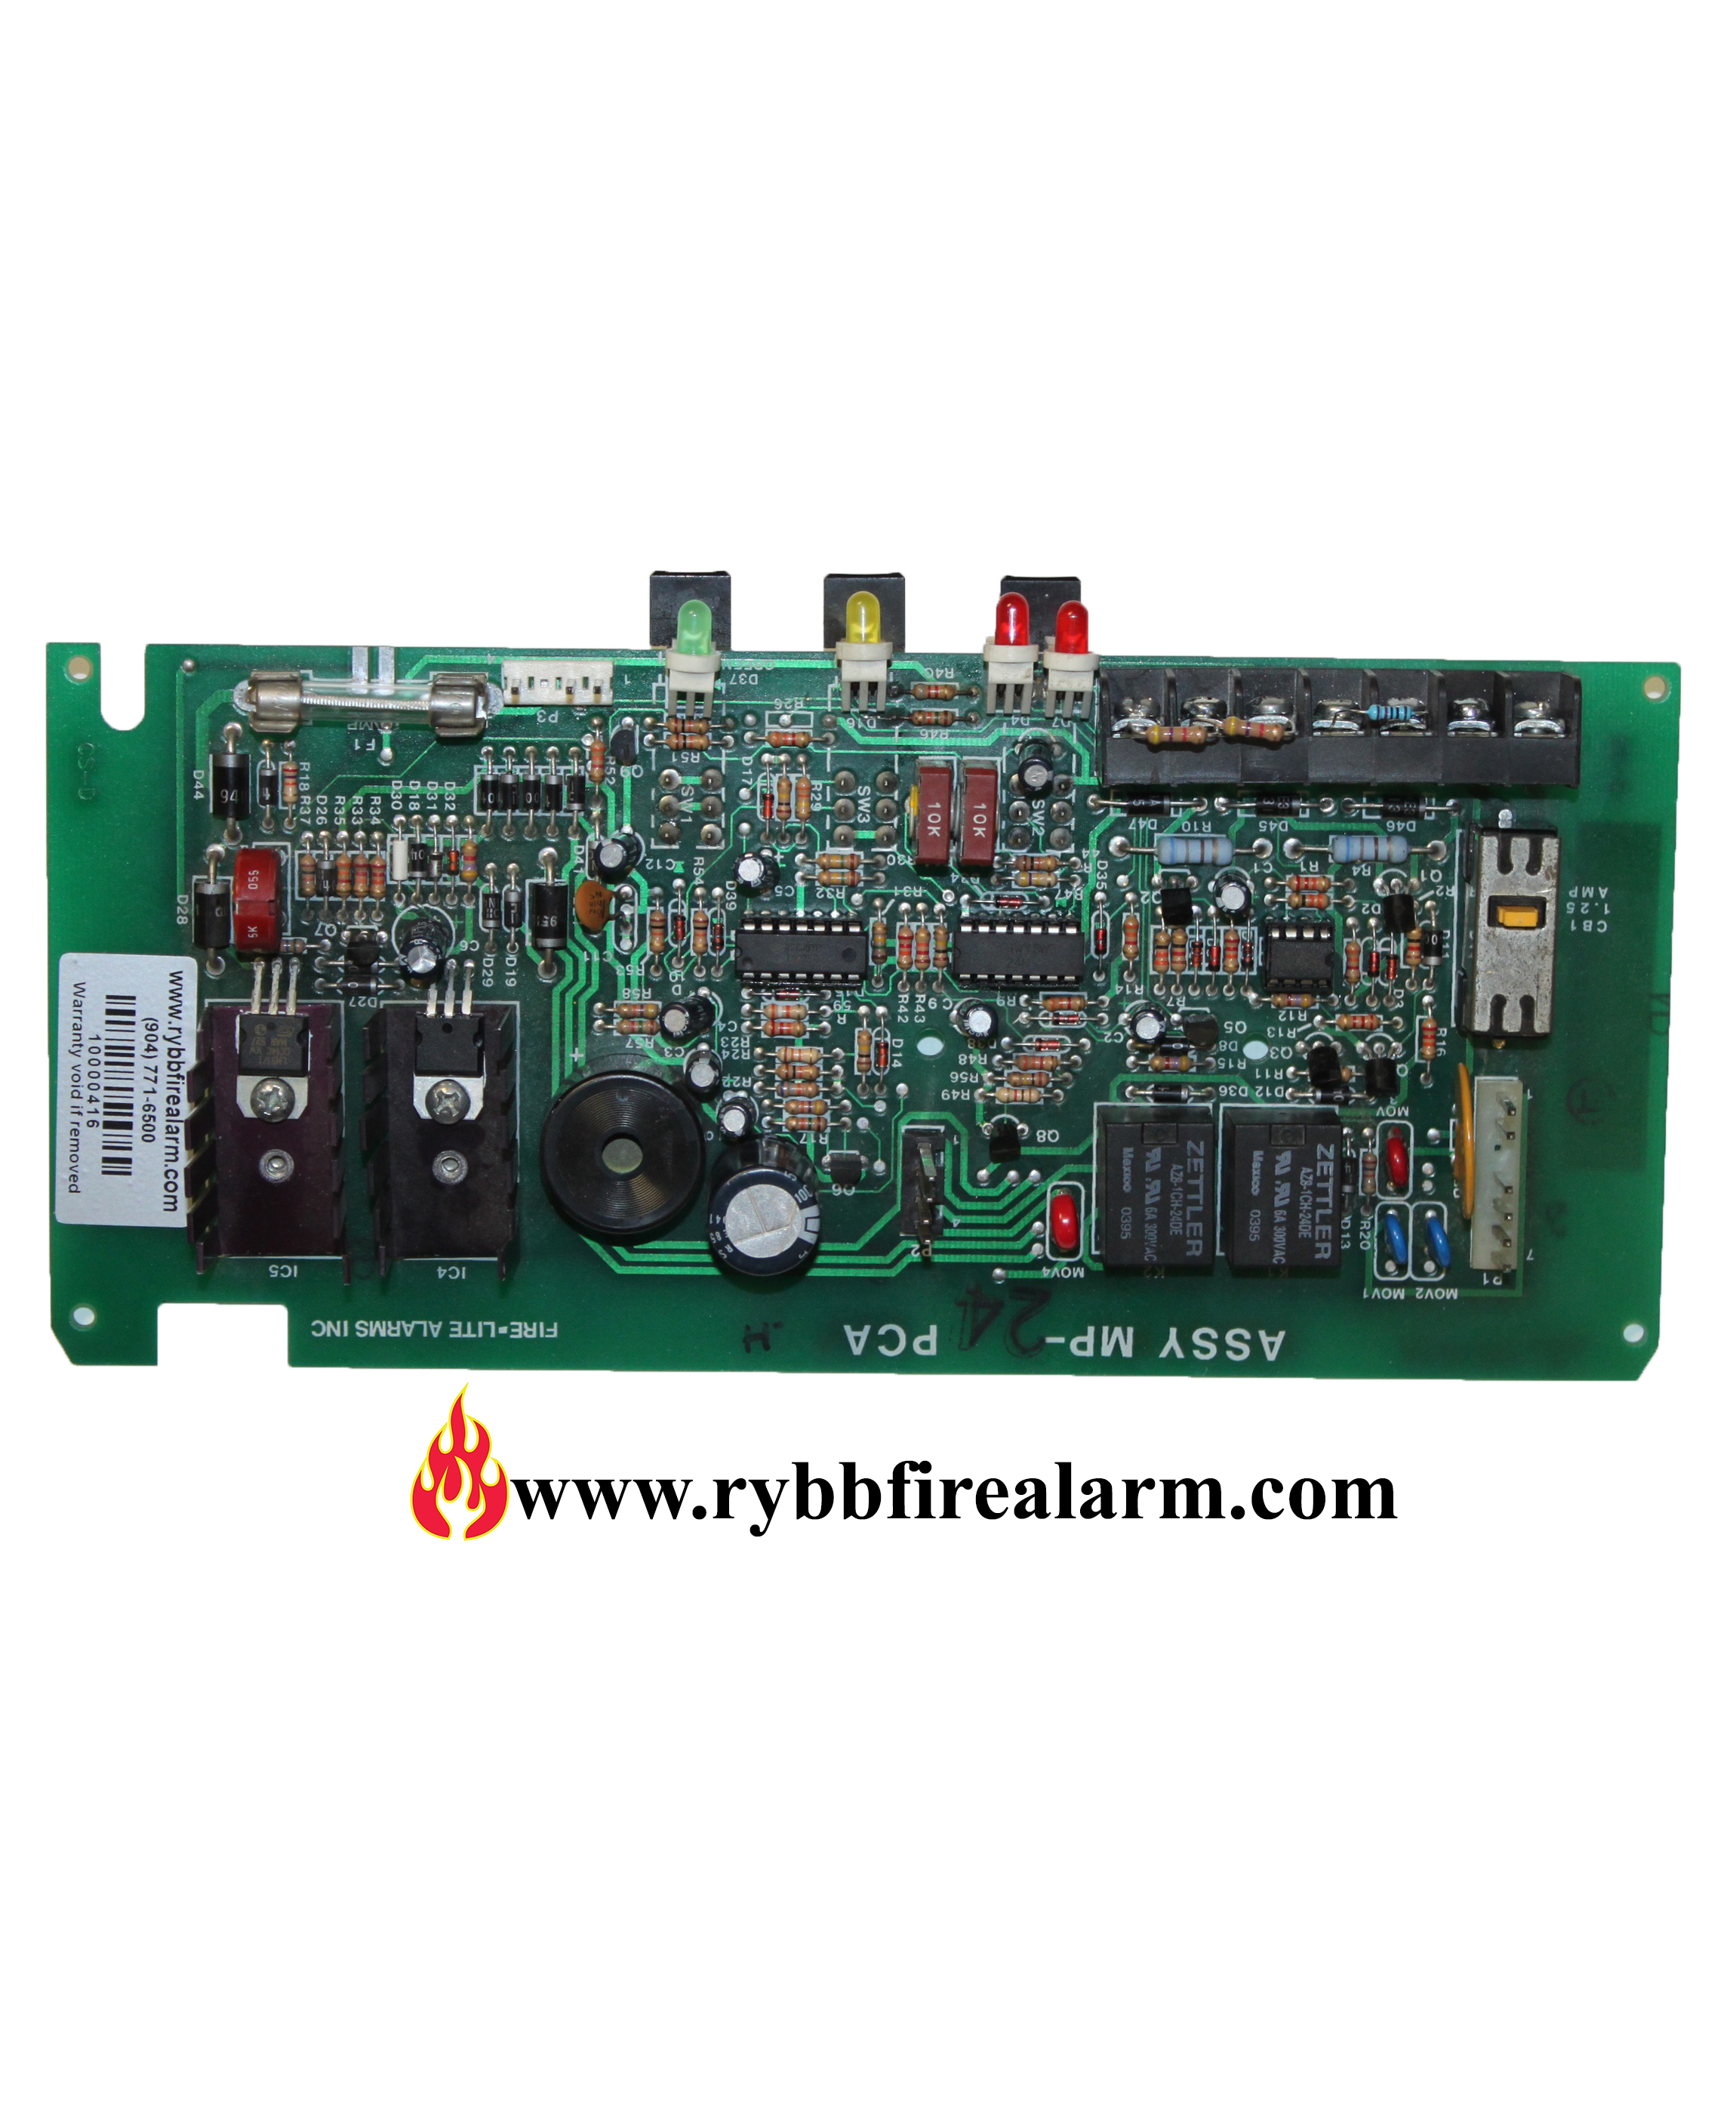 Switch Box Wiring Diagram Moreover Fire Alarm Control Panel Wiring